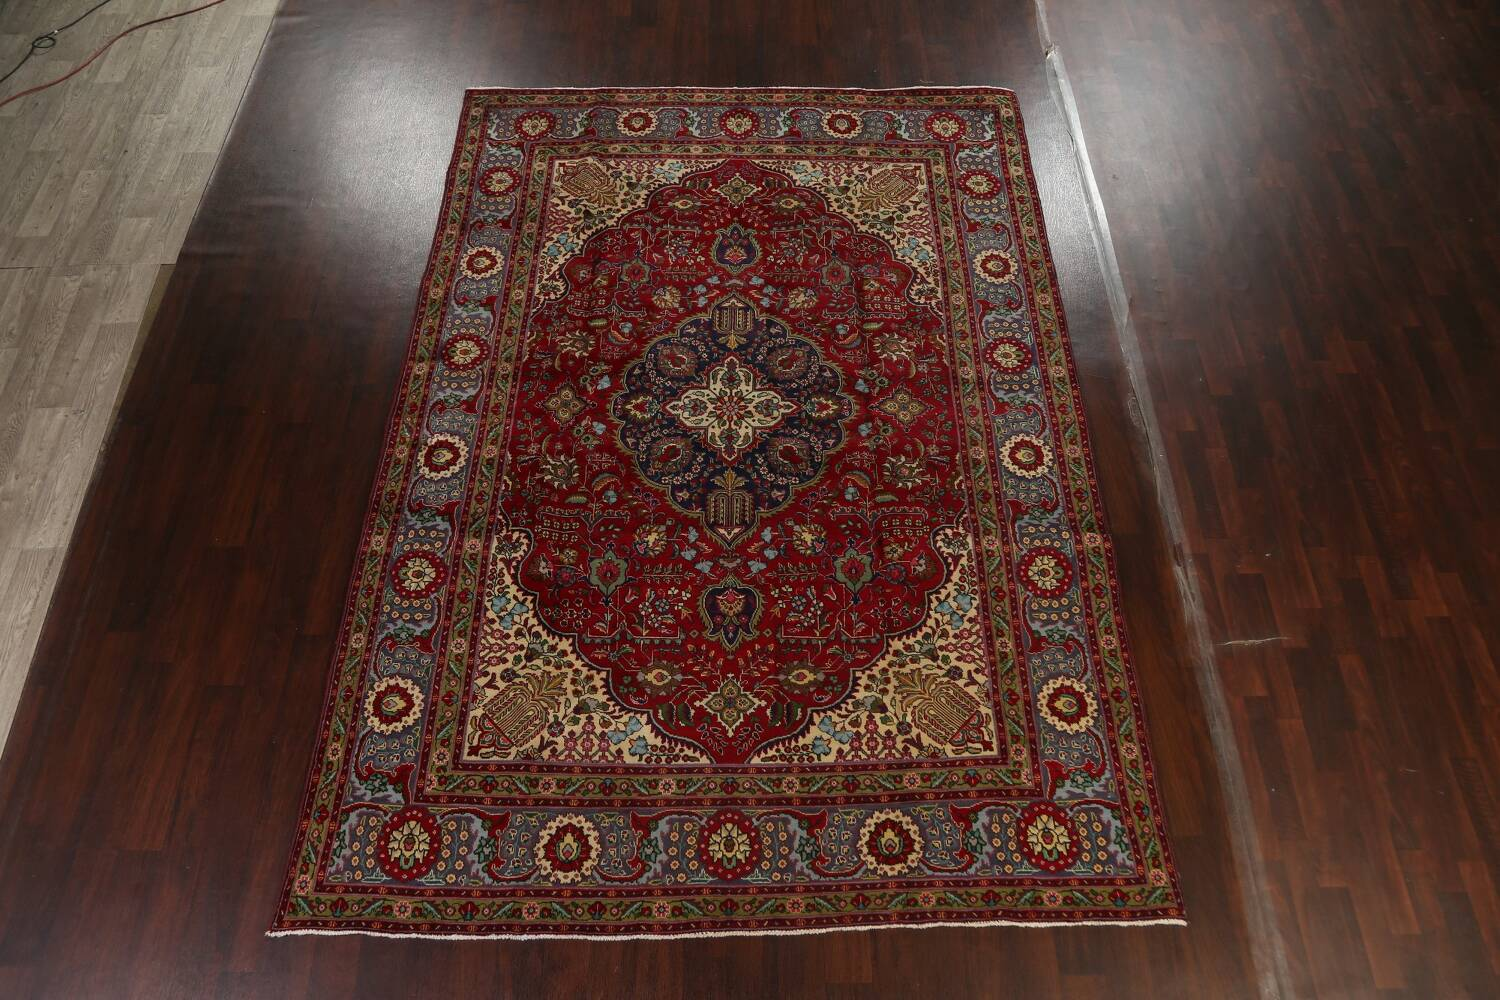 Floral Red Tabriz Persian Area Rug 8x12 image 19